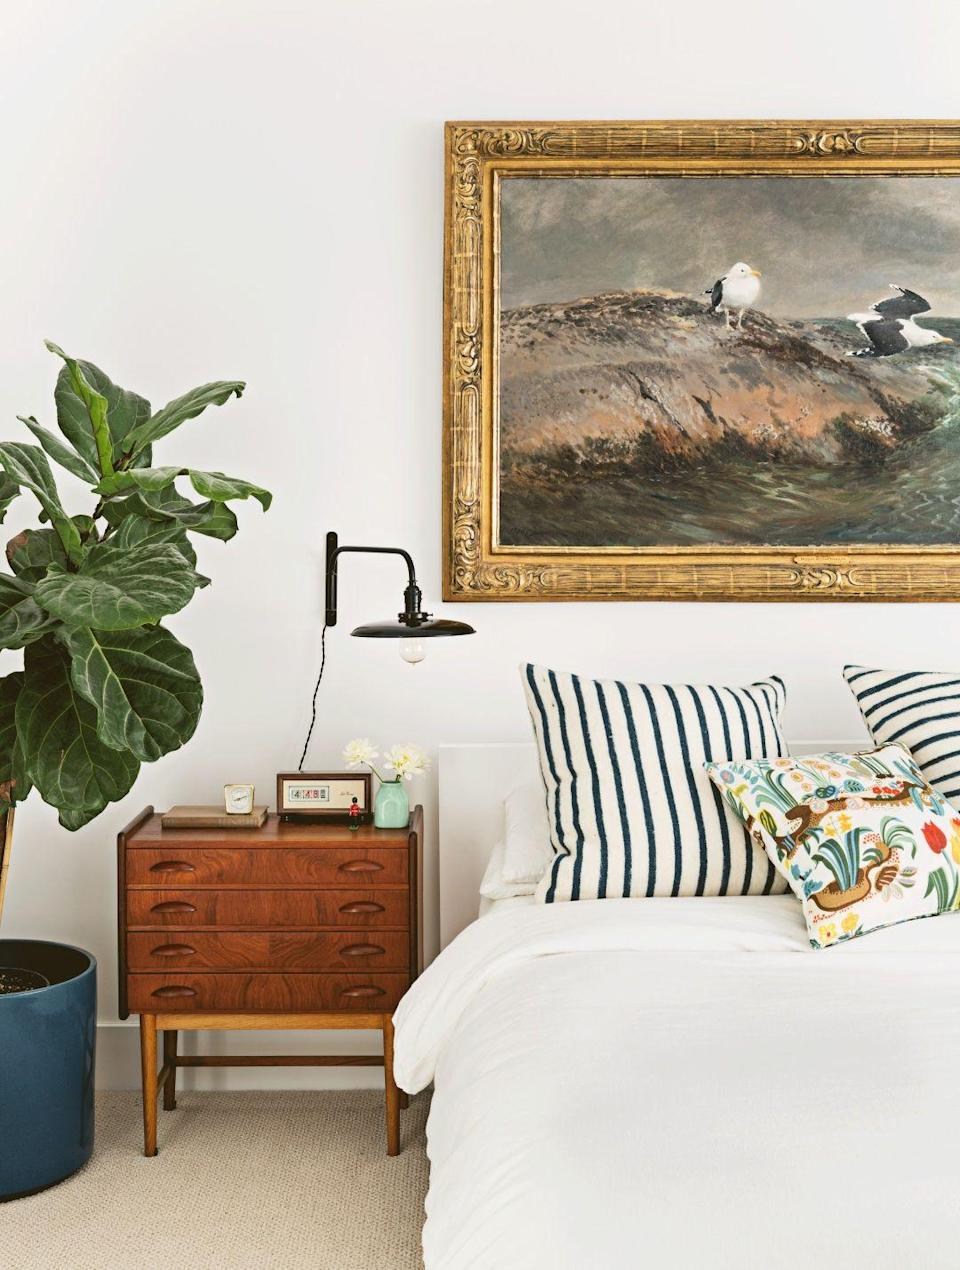 "<p>Highlight your favorite piece with subdued surroundings. Neutral walls, carpeting, and bedding make the perfect backdrop for <a href=""https://www.goodhousekeeping.com/home/decorating-ideas/g1660/stylish-family-friendly-home/"" rel=""nofollow noopener"" target=""_blank"" data-ylk=""slk:a master bedroom"" class=""link rapid-noclick-resp"">a master bedroom</a>'s focal point: a big, bold seascape.</p>"